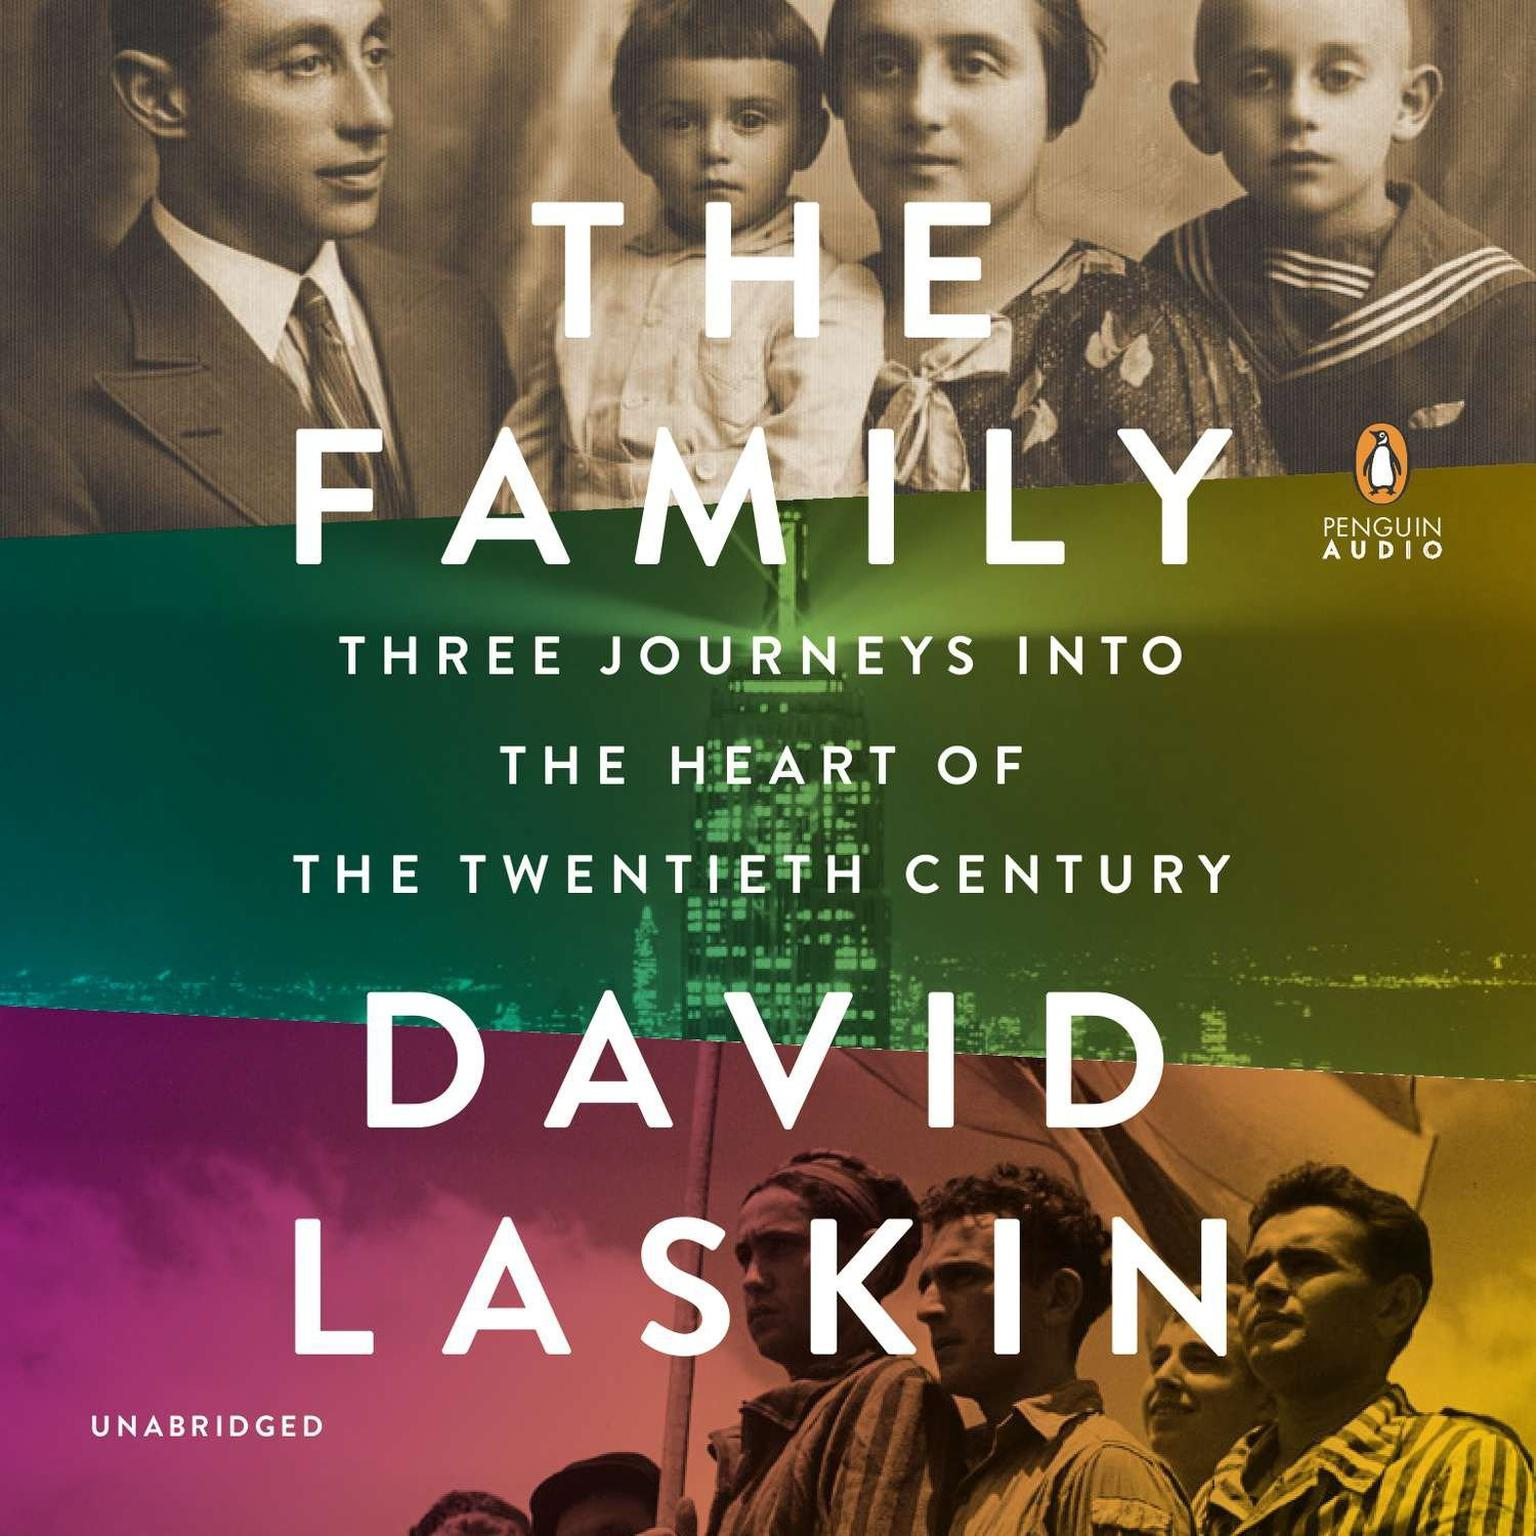 Printable The Family: Three Journeys into the Heart of the Twentieth Century Audiobook Cover Art